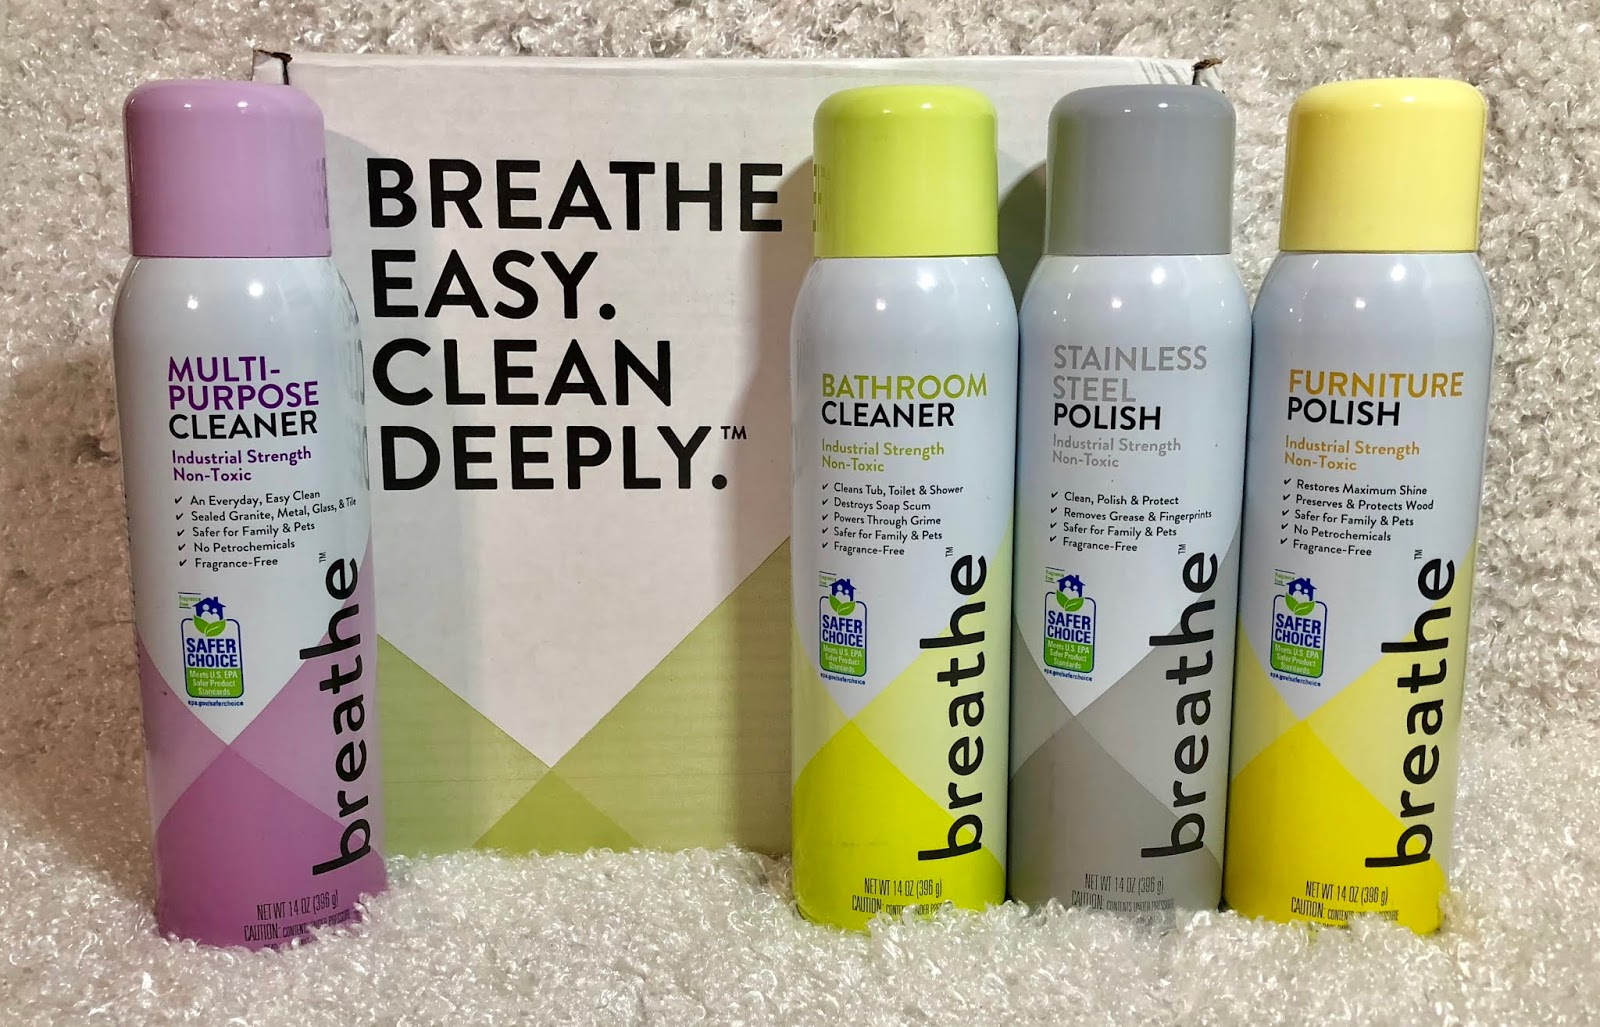 I Recently Received A Really Nice Array Of Breathe™ Cleaning Products And I  Have To Say I Am Really Excited About Them. They Are The First Line Of  Aerosol ...